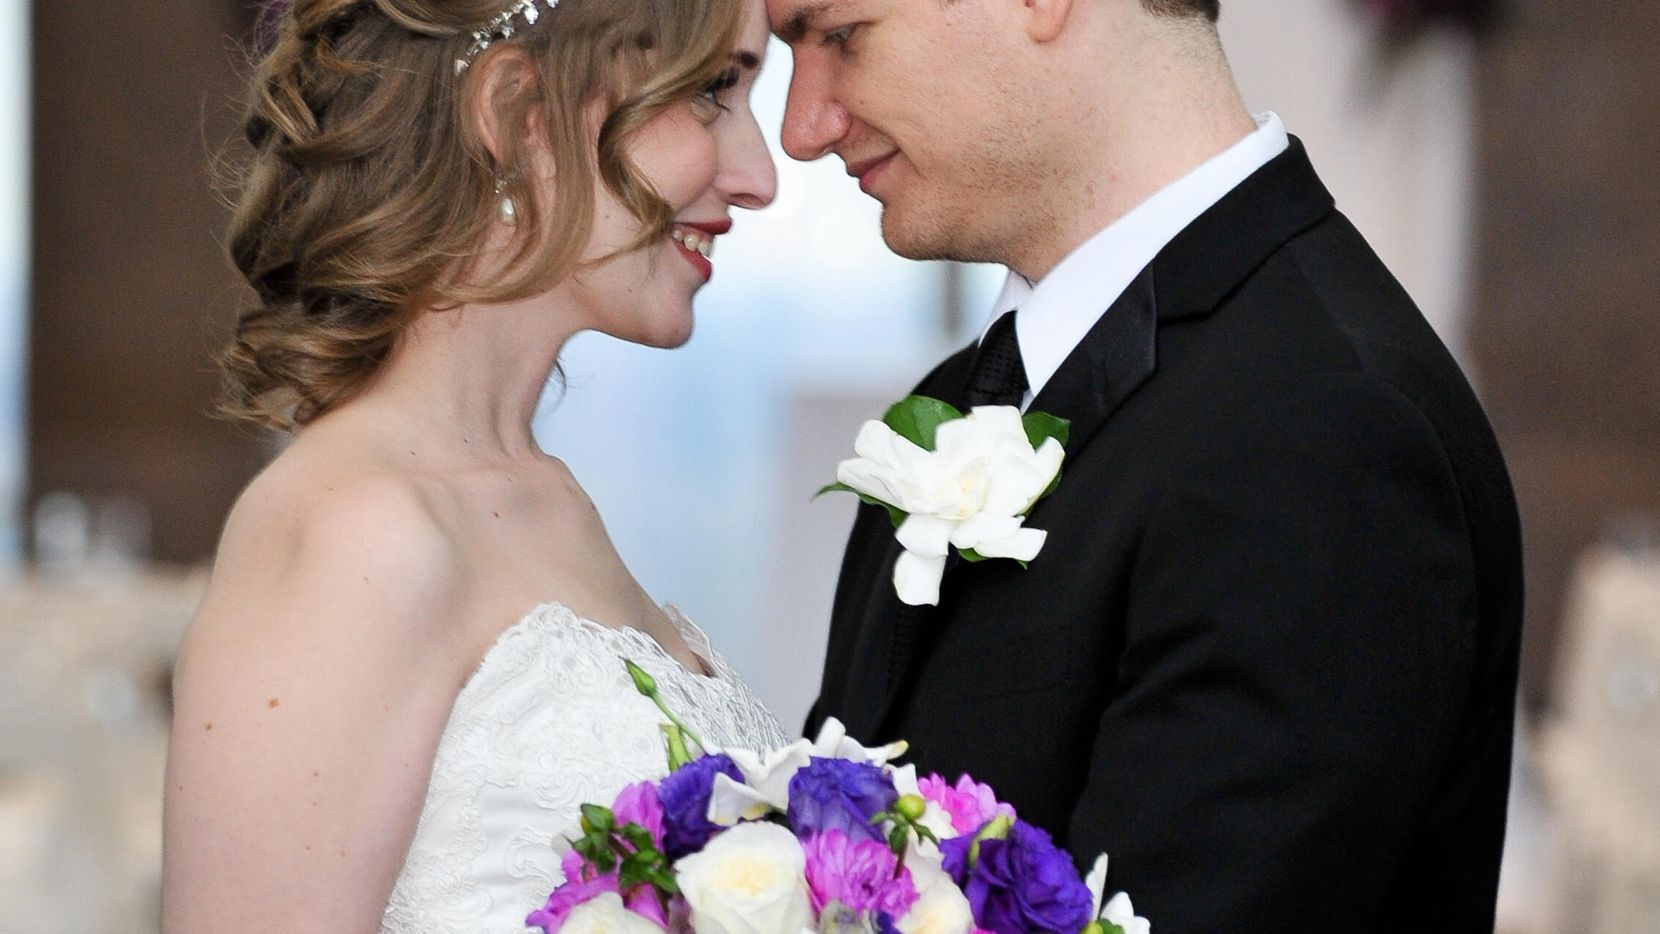 Neely and Andrew Moldovan at their wedding in October 2014.